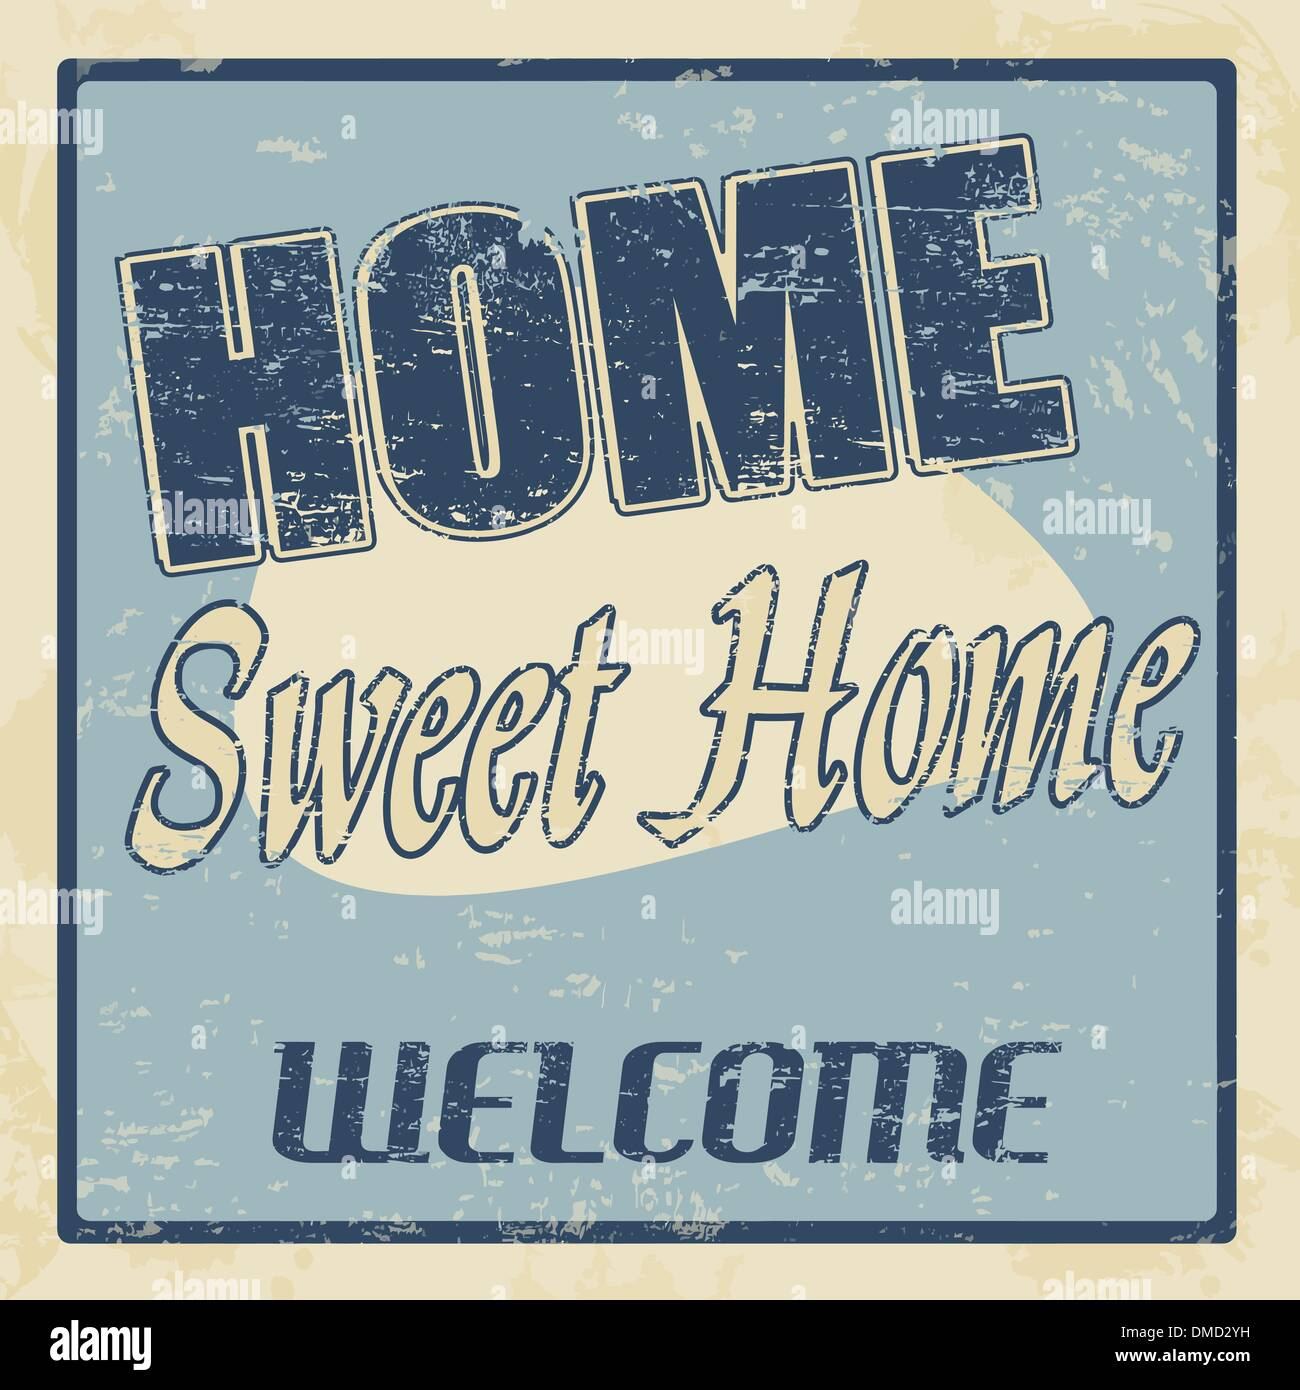 Home sweet home vintage poster - Stock Vector